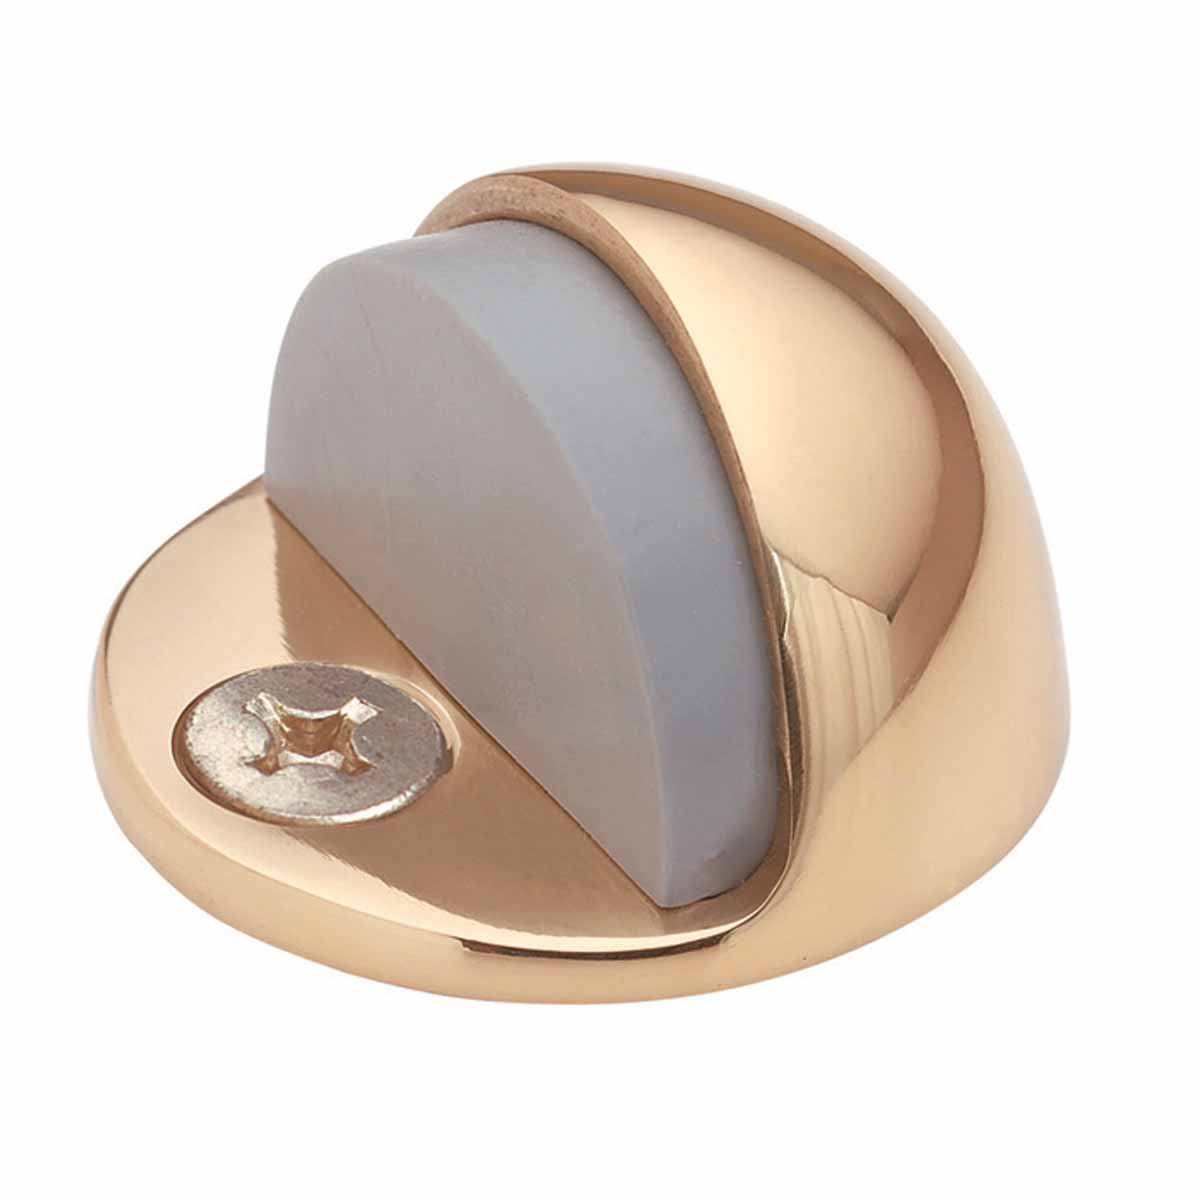 Brass Door Stop Dome Floor Mount Bumper | Renovator's Supply